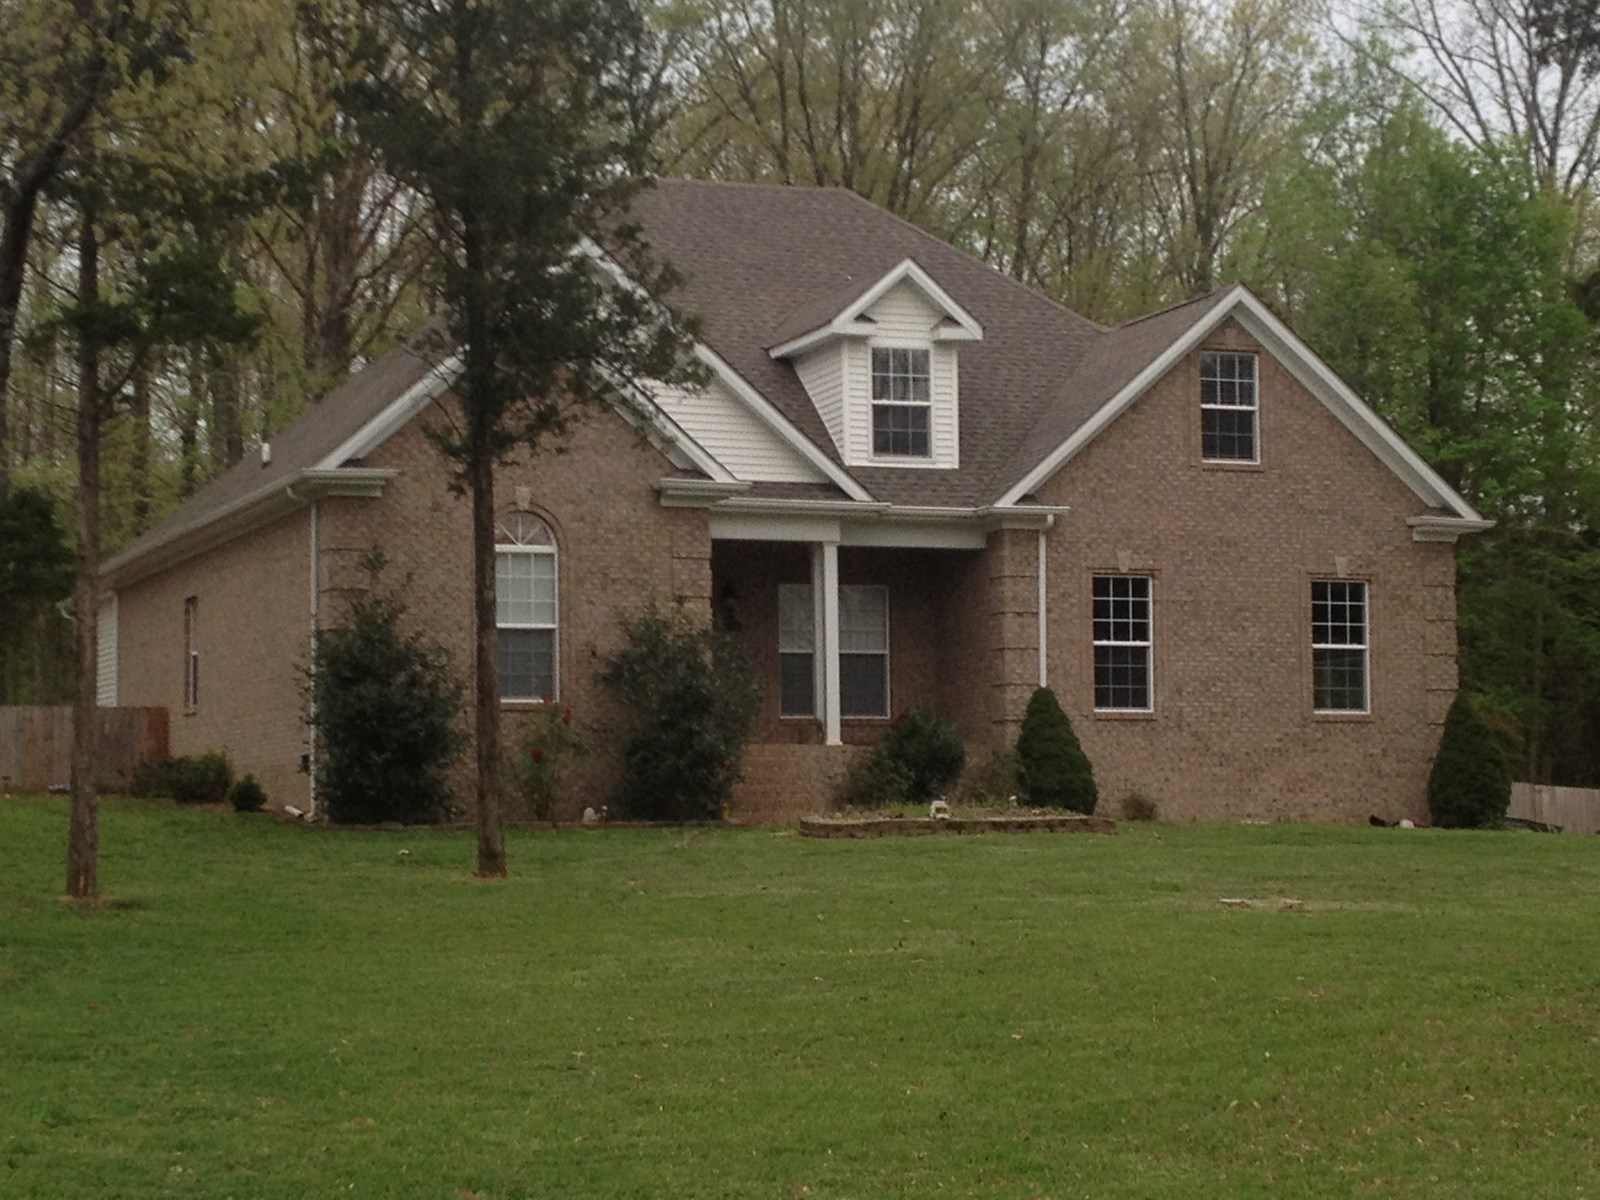 4 Bedroom 3 Bath brick home for sale near Bowling Green, Ky.